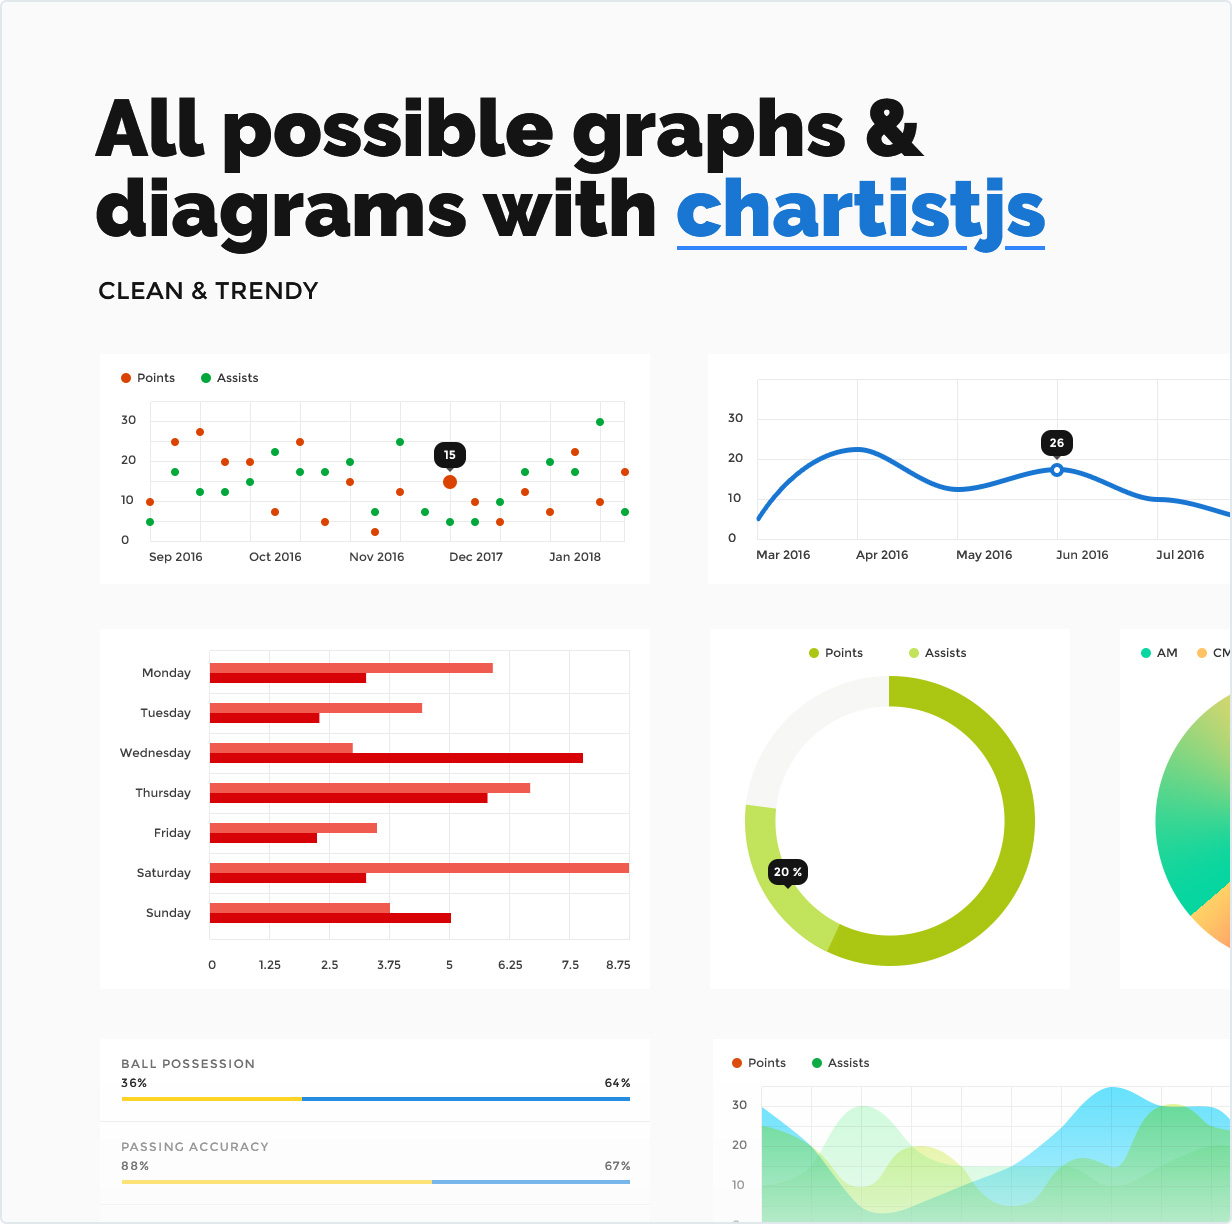 All possible graphs & diagrams with chartistjs